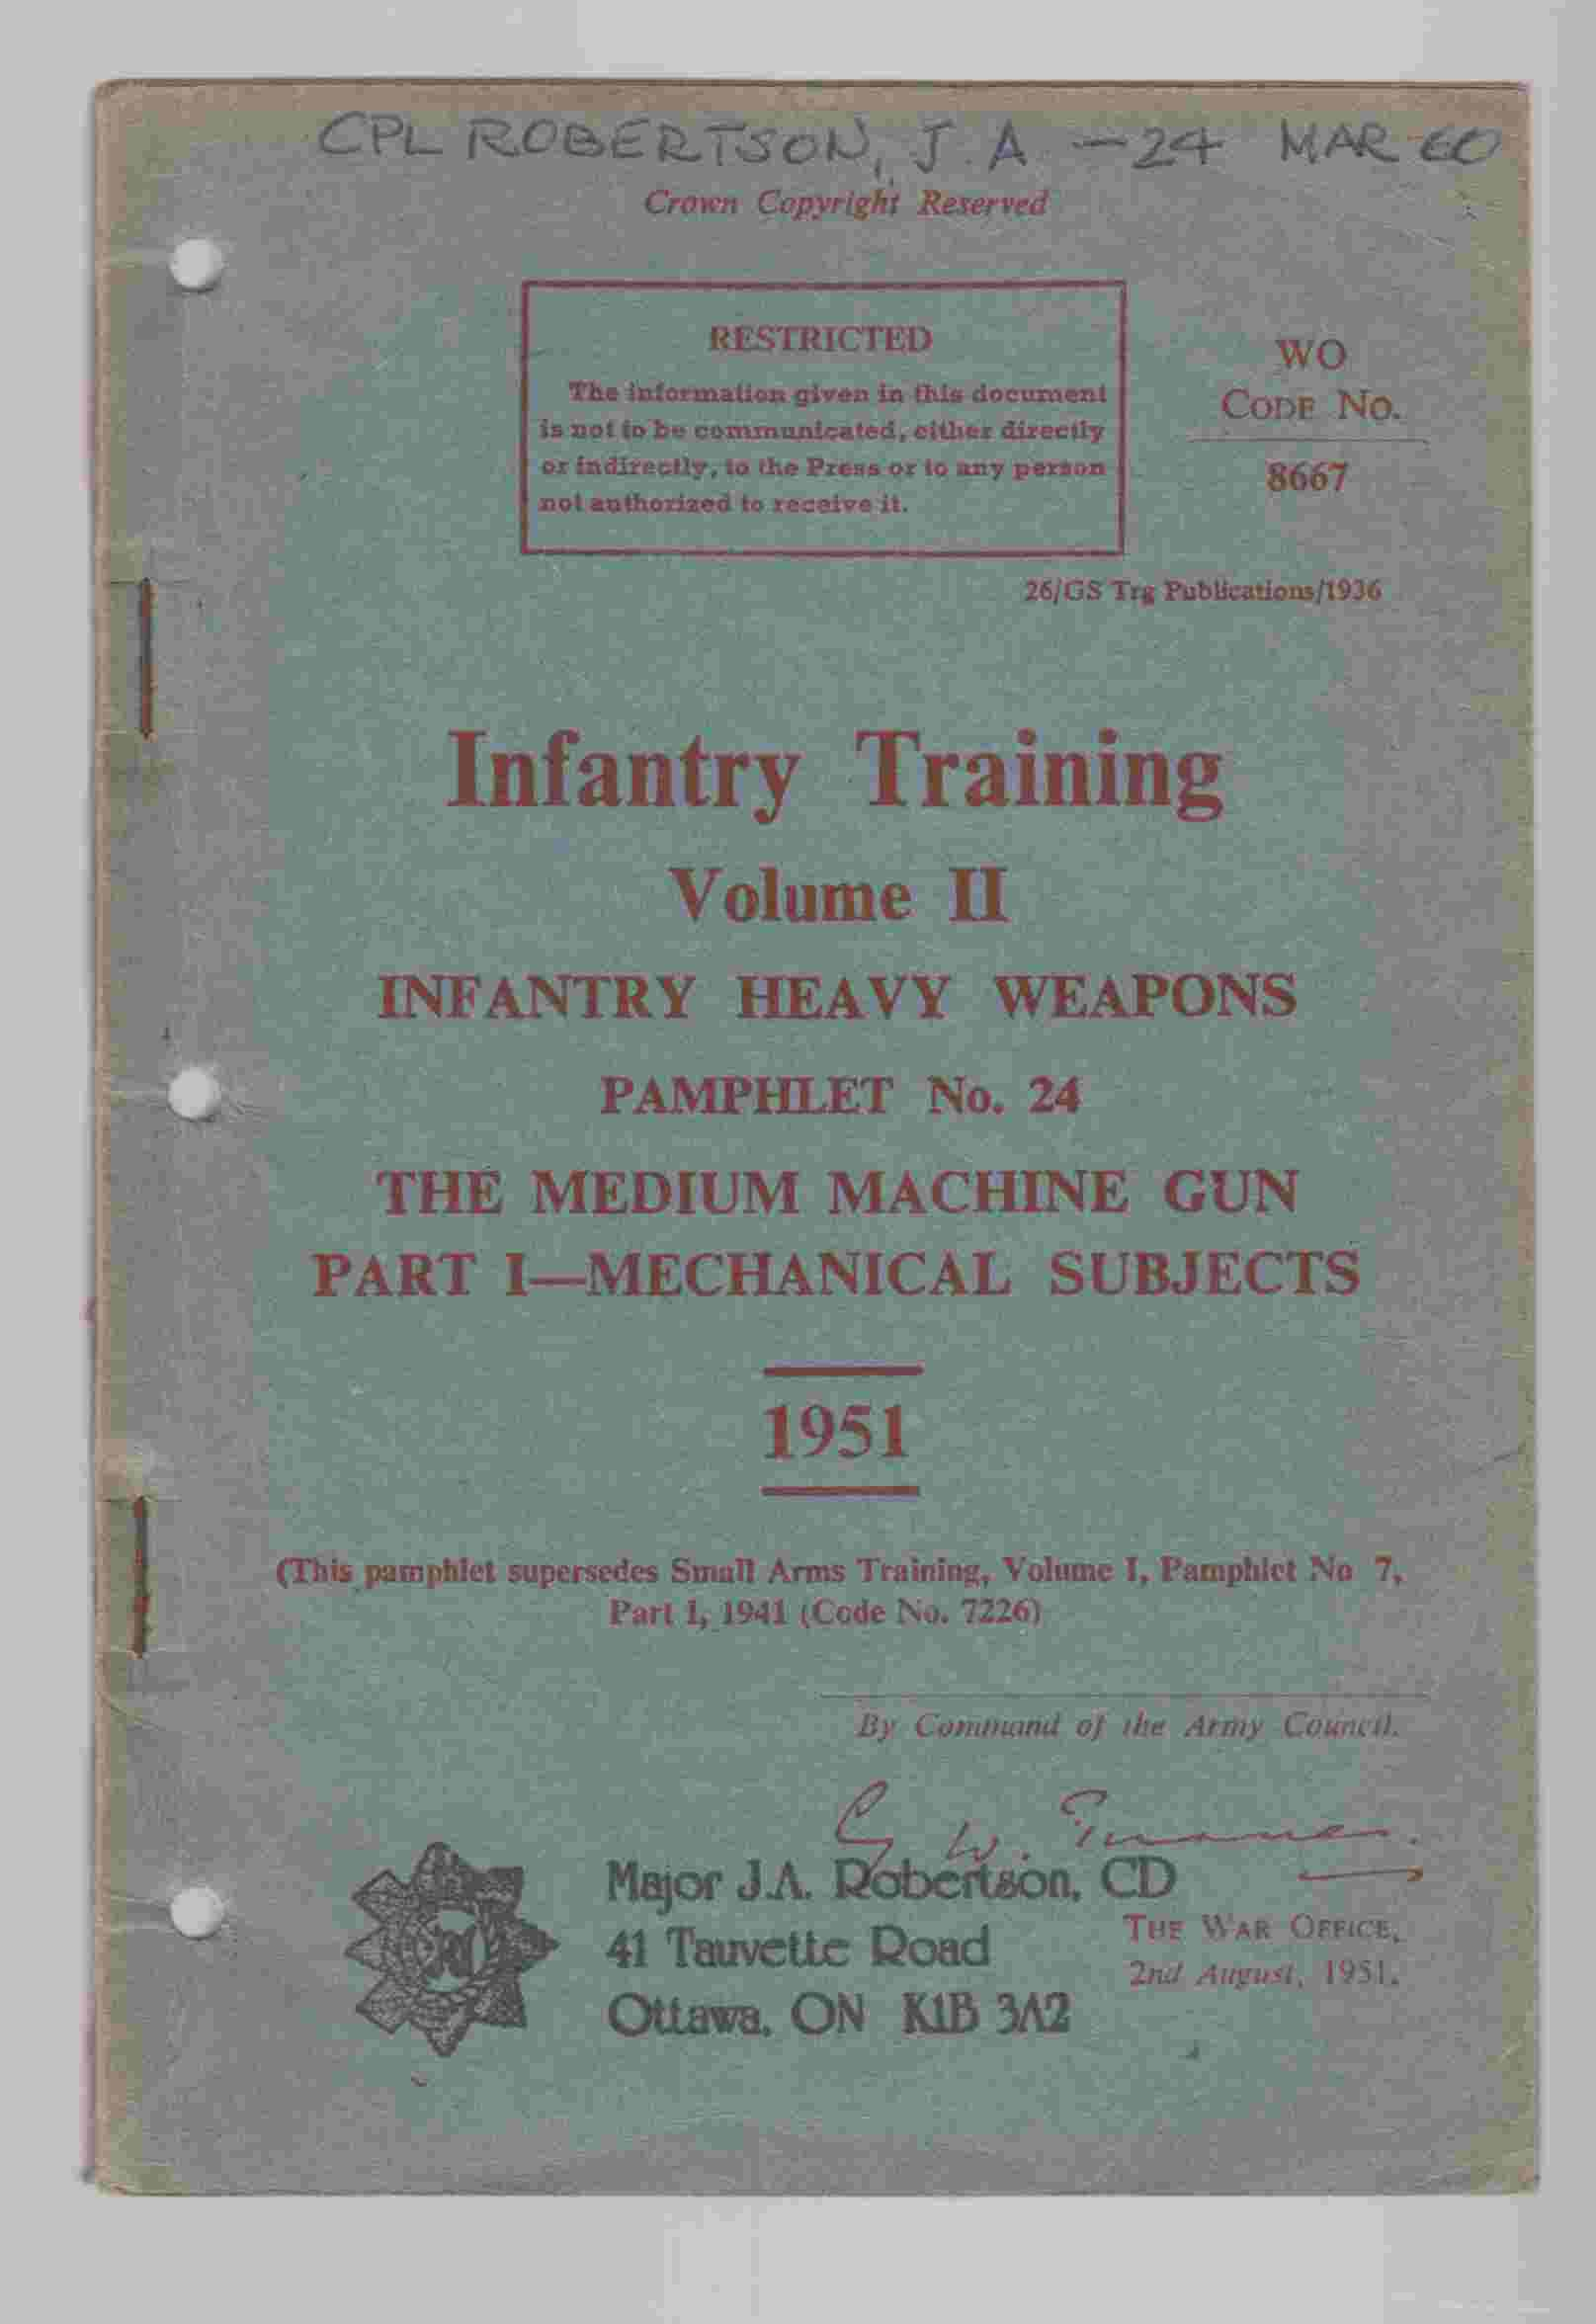 Image for Infantry Training Volume II Infantry Heavy Weapons Pamphlet No. 24 The Medium Machine Gun Part I - Mechanical Subjects 1951